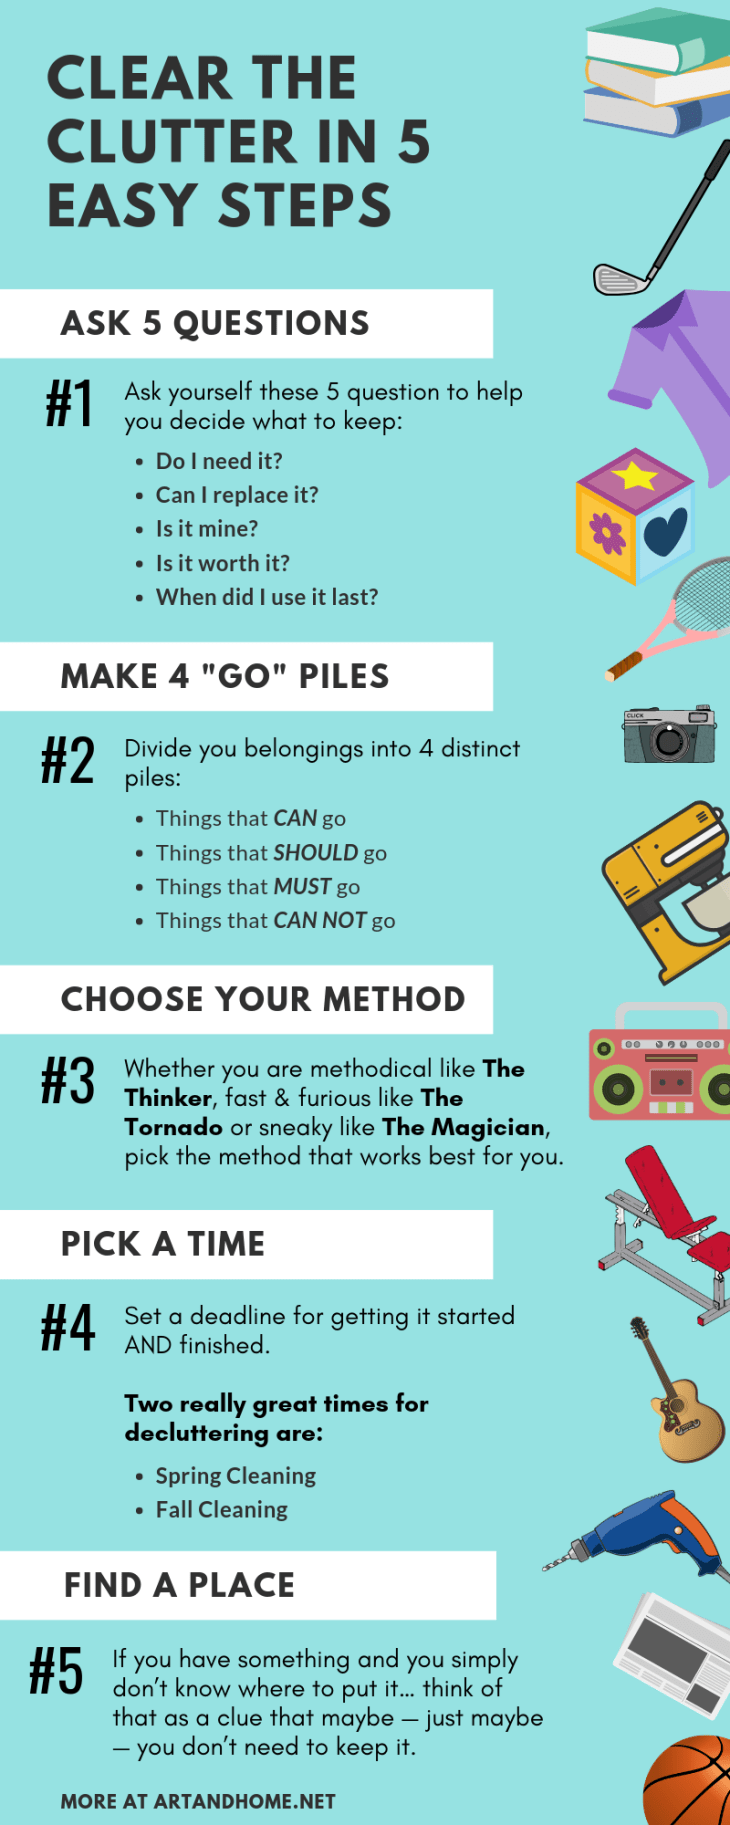 Clear the Clutter in 5 Easy Steps: An Infographic